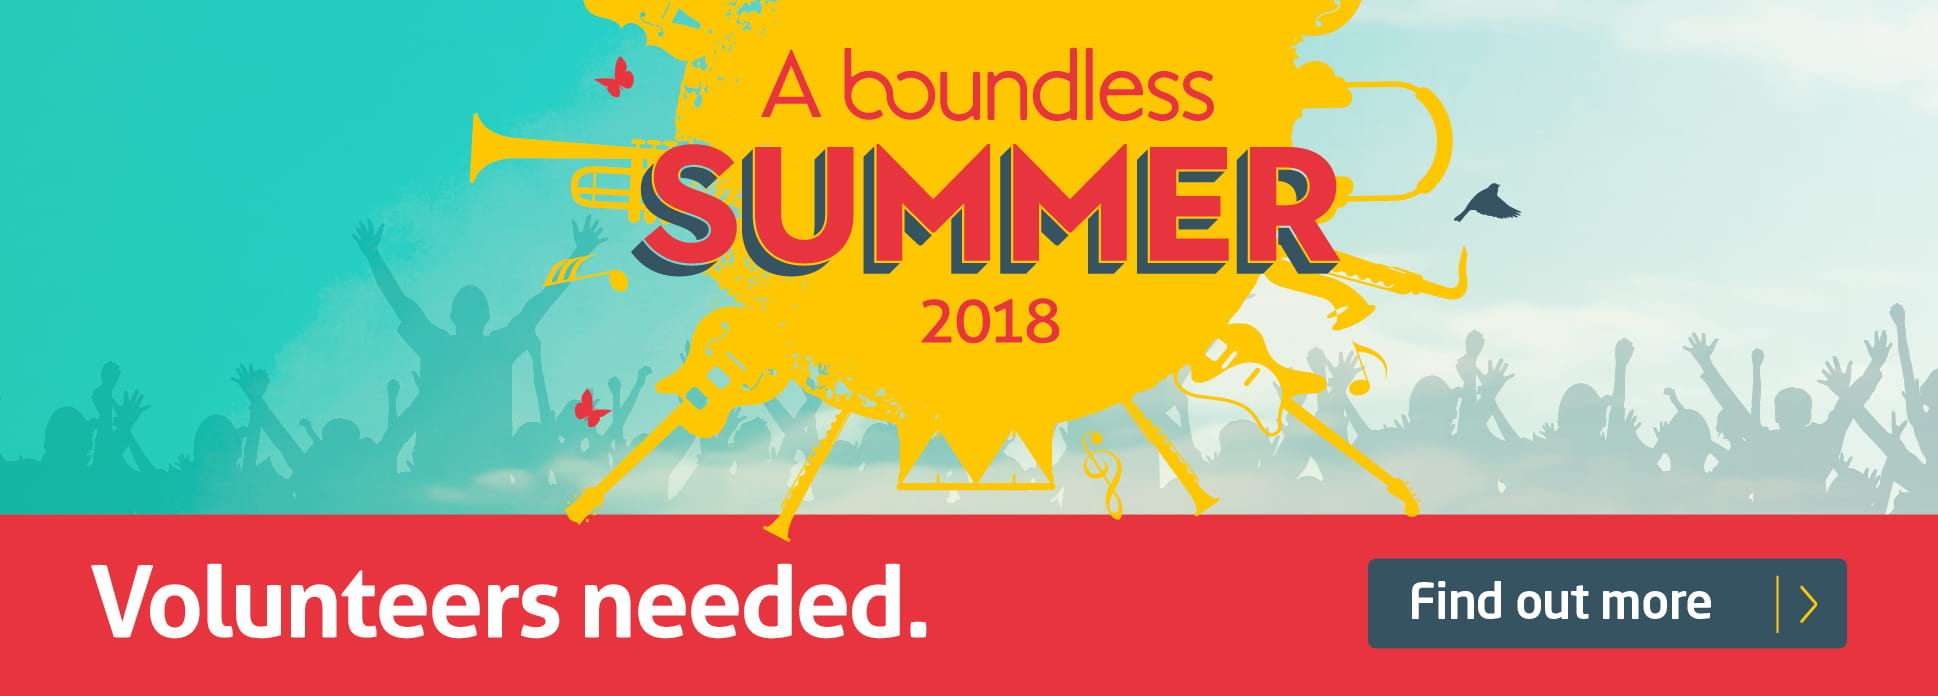 Boundless Summer volunteer